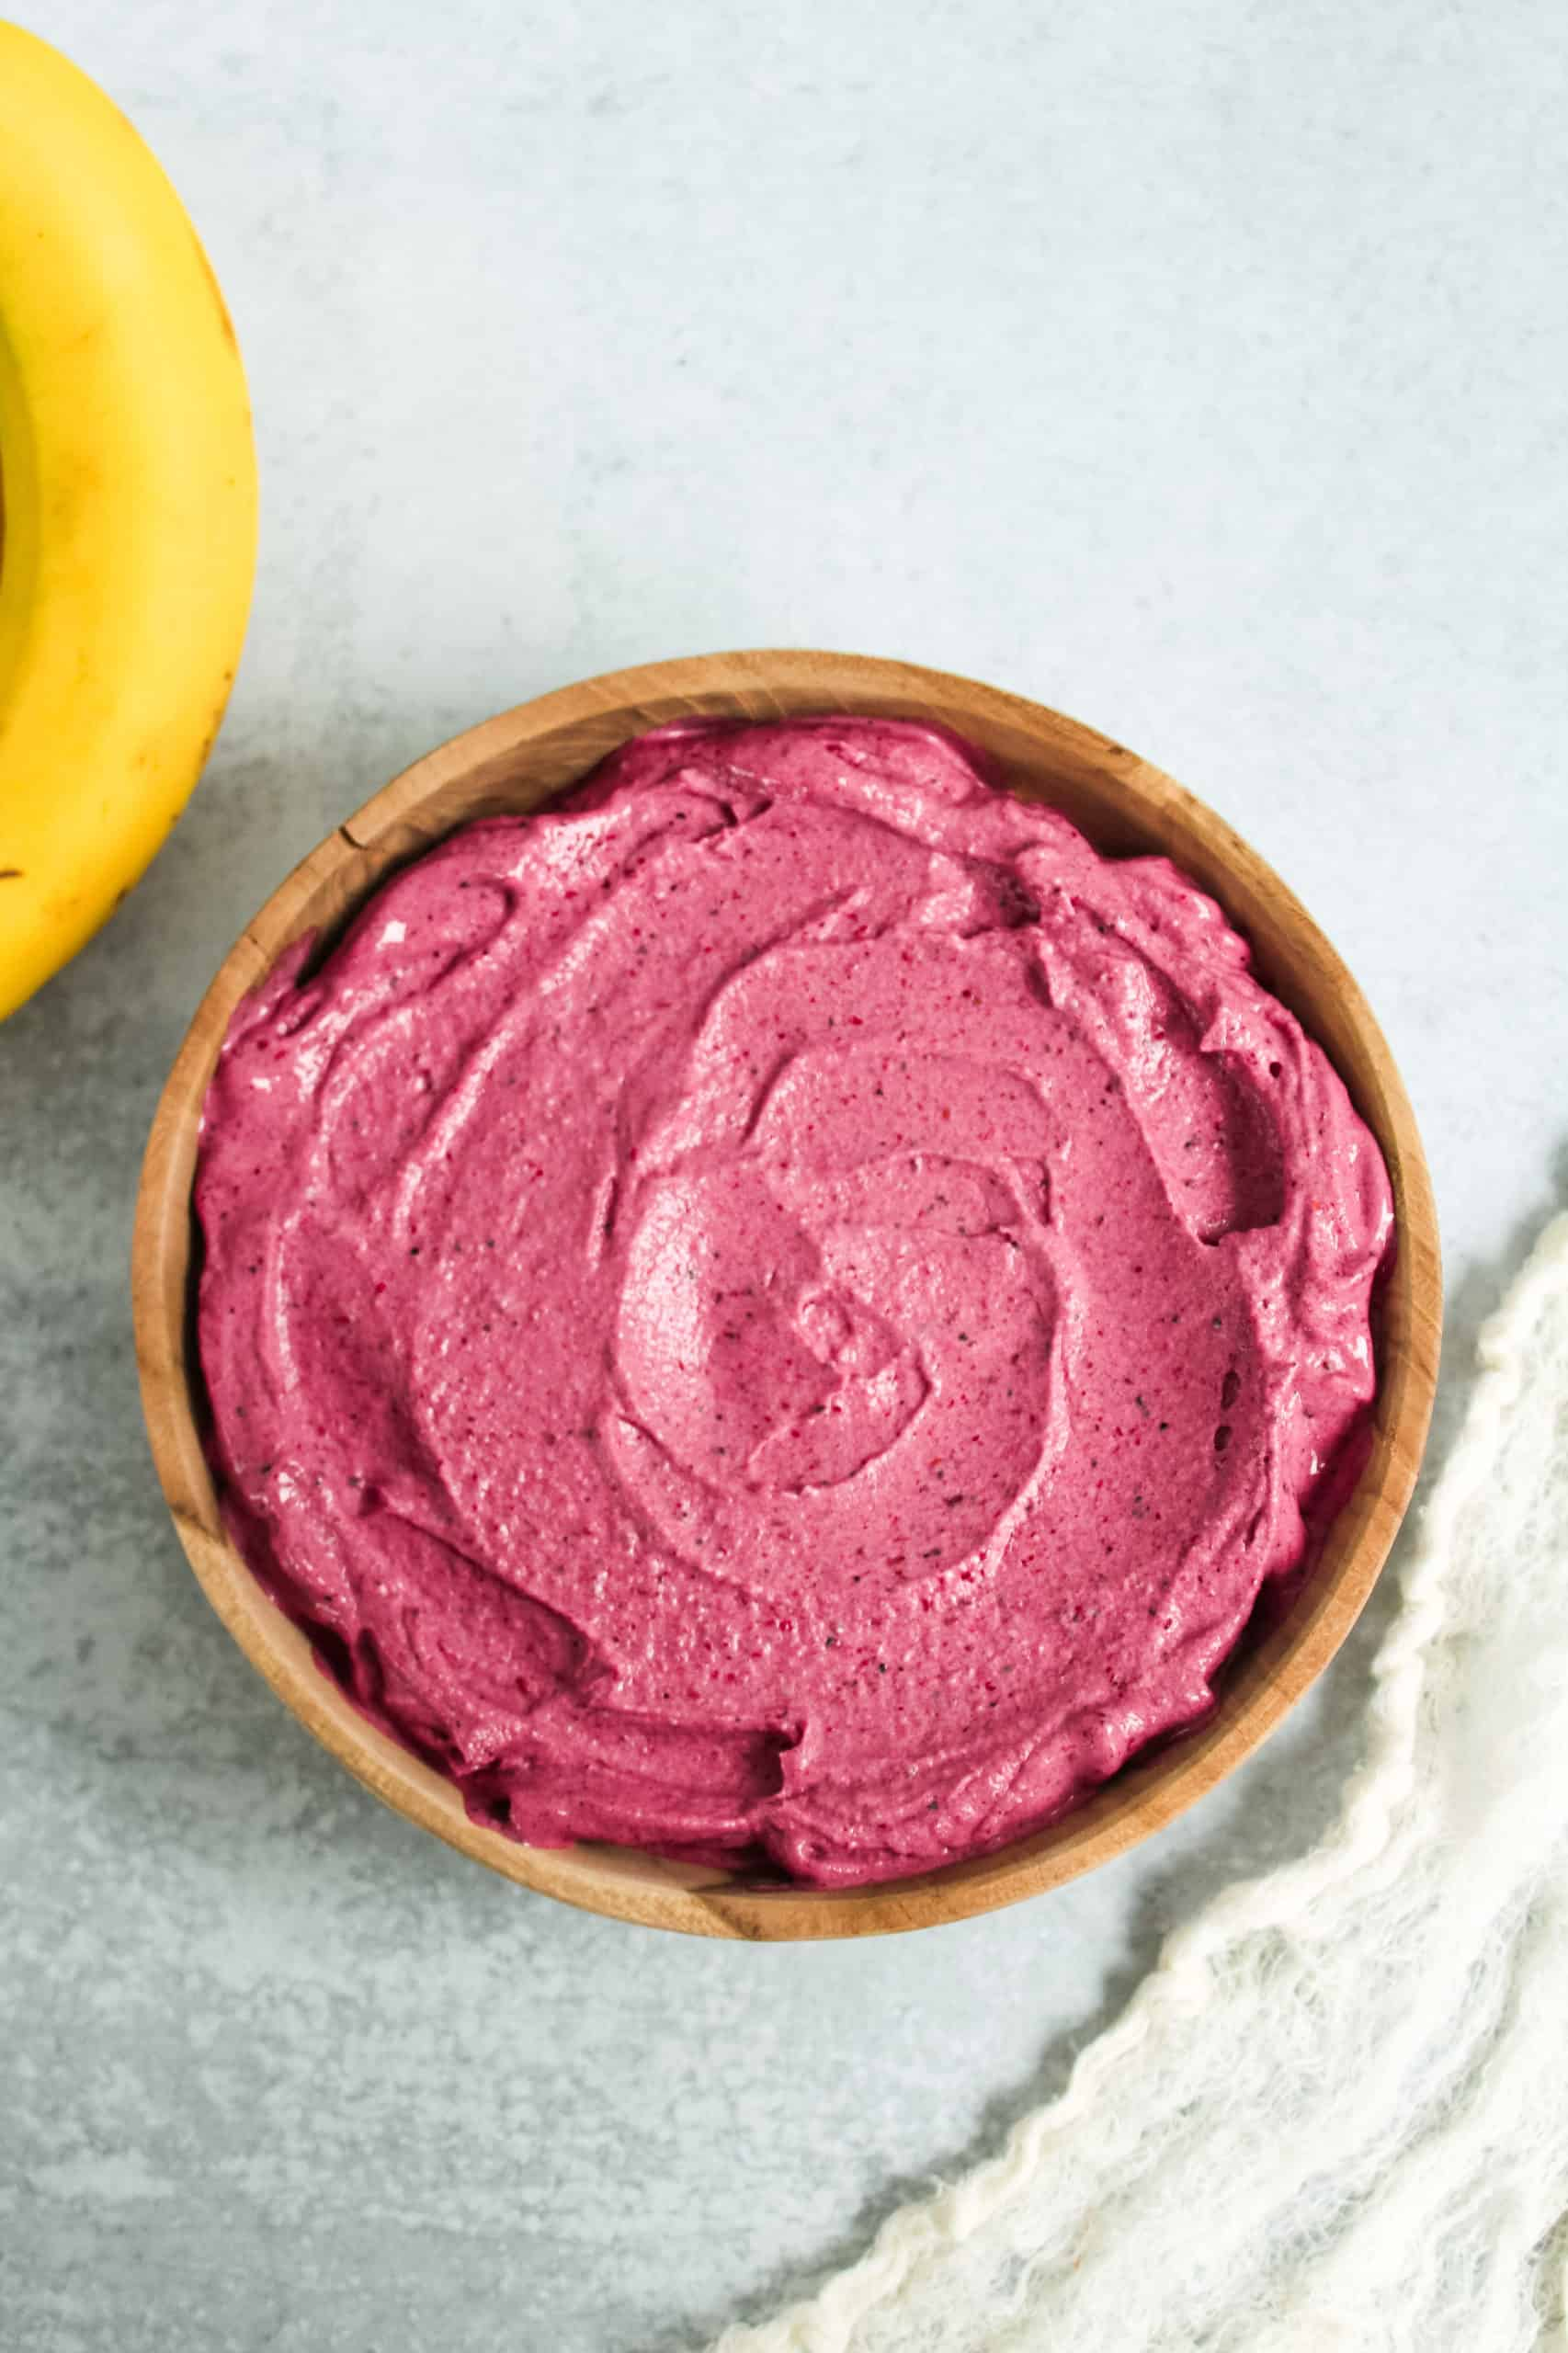 Sharing 5 easy tips to help make the best smoothie bowl ever, by focusing specifically on consistency, clean, healthy ingredients, & delicious toppings!